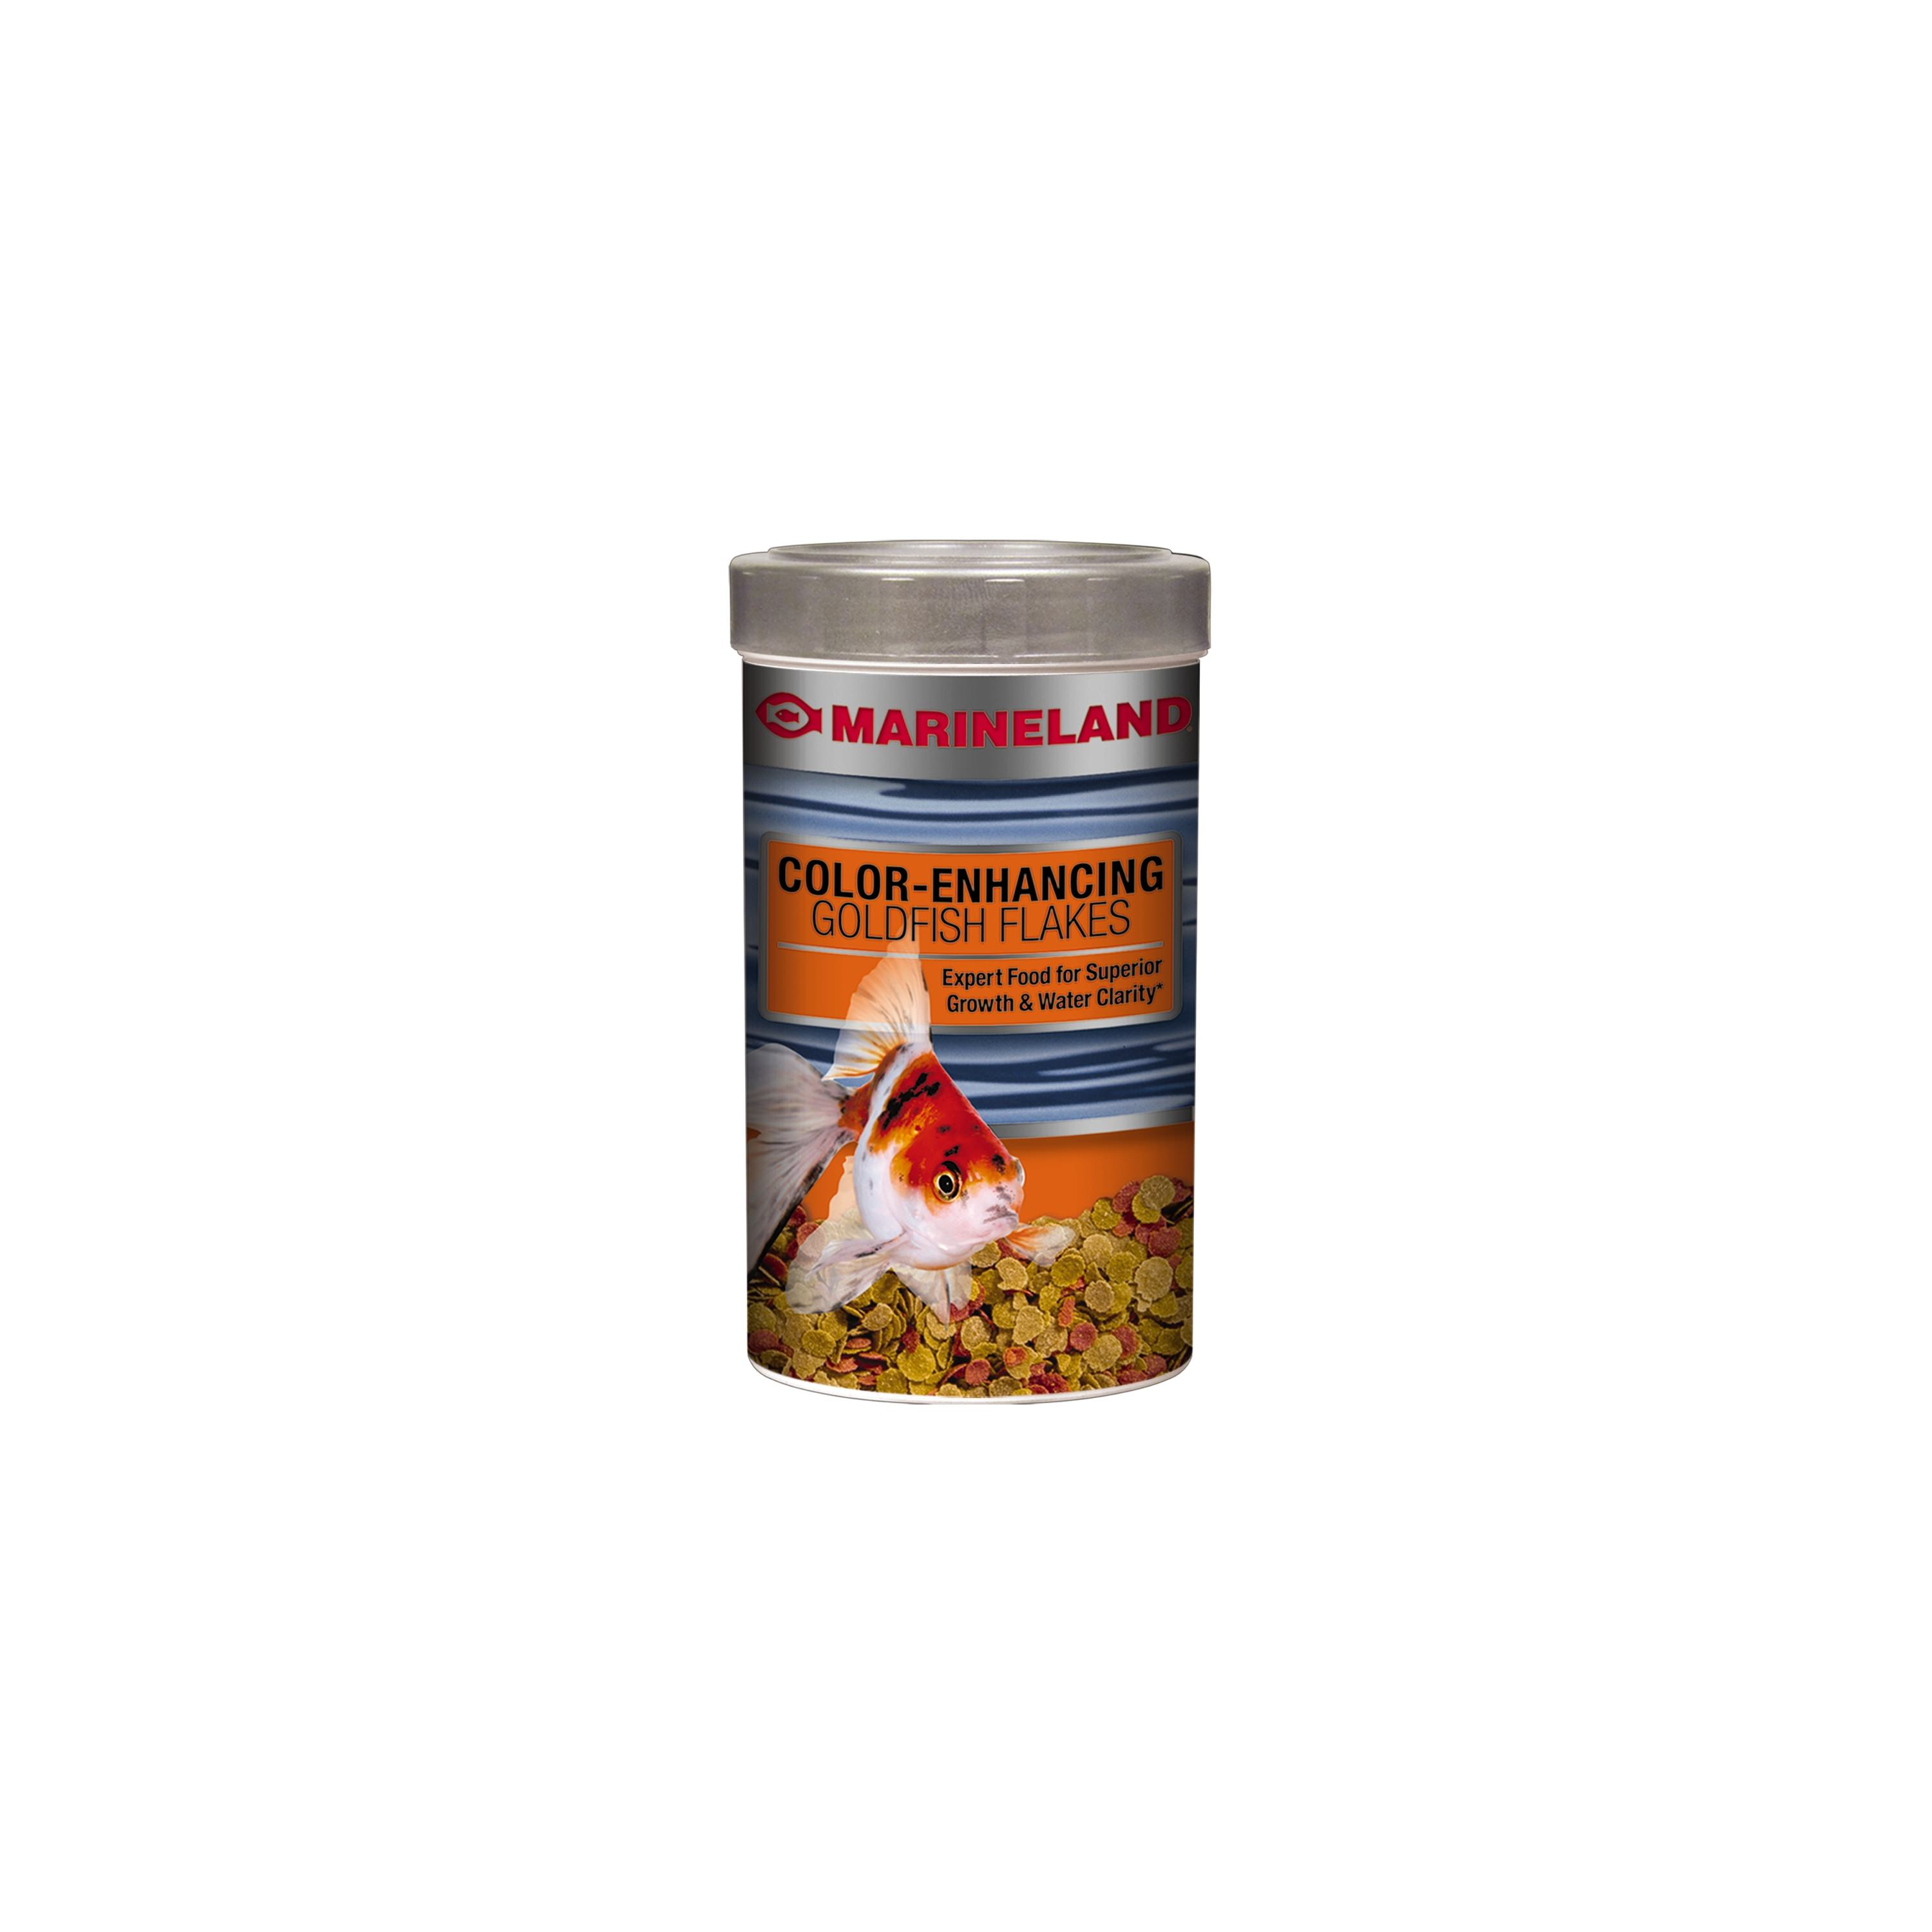 Marineland Color-Enhancing Goldfish Flakes, 9.88 oz by Spectrum Brands